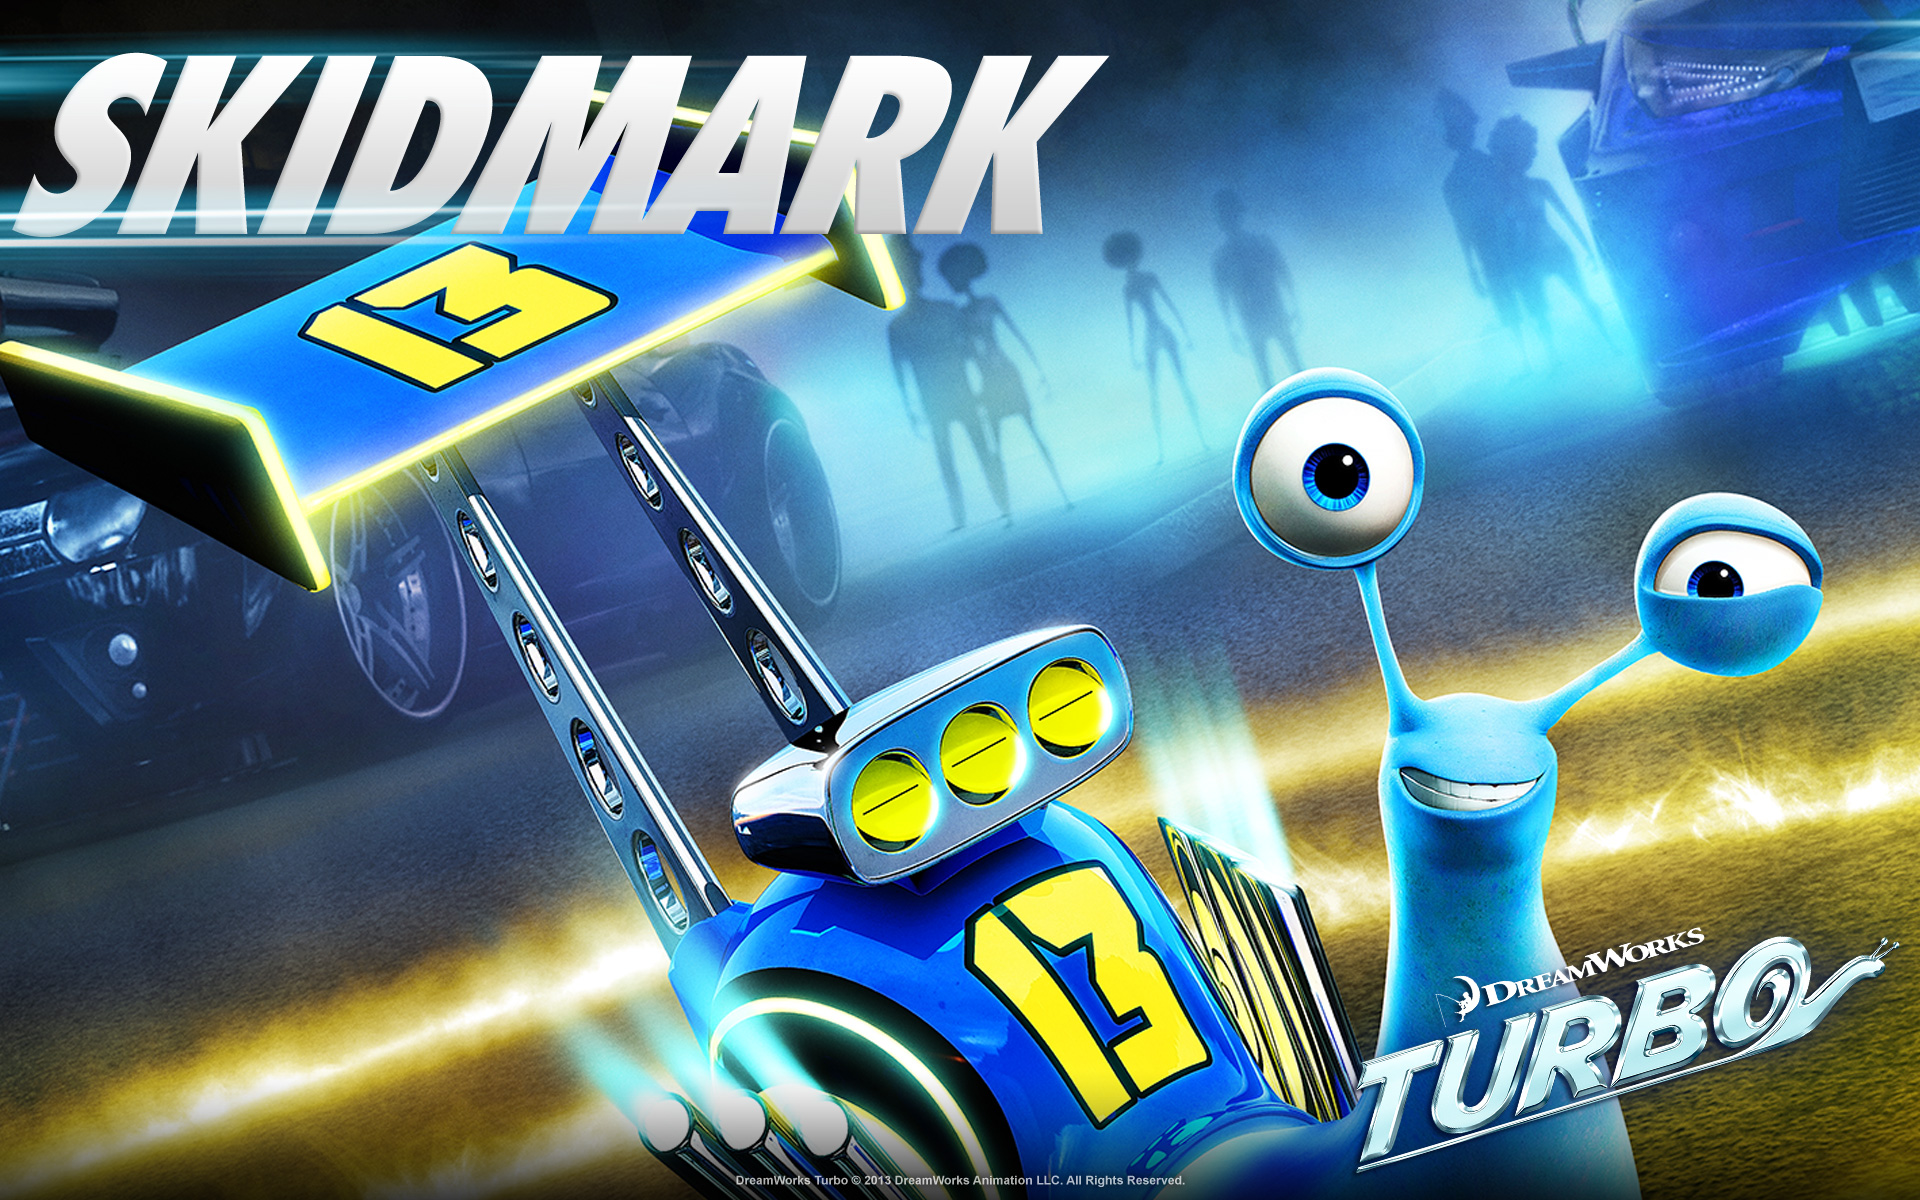 image - skidmark-in-turbo-movie-hd-wallpapers | turbo wiki